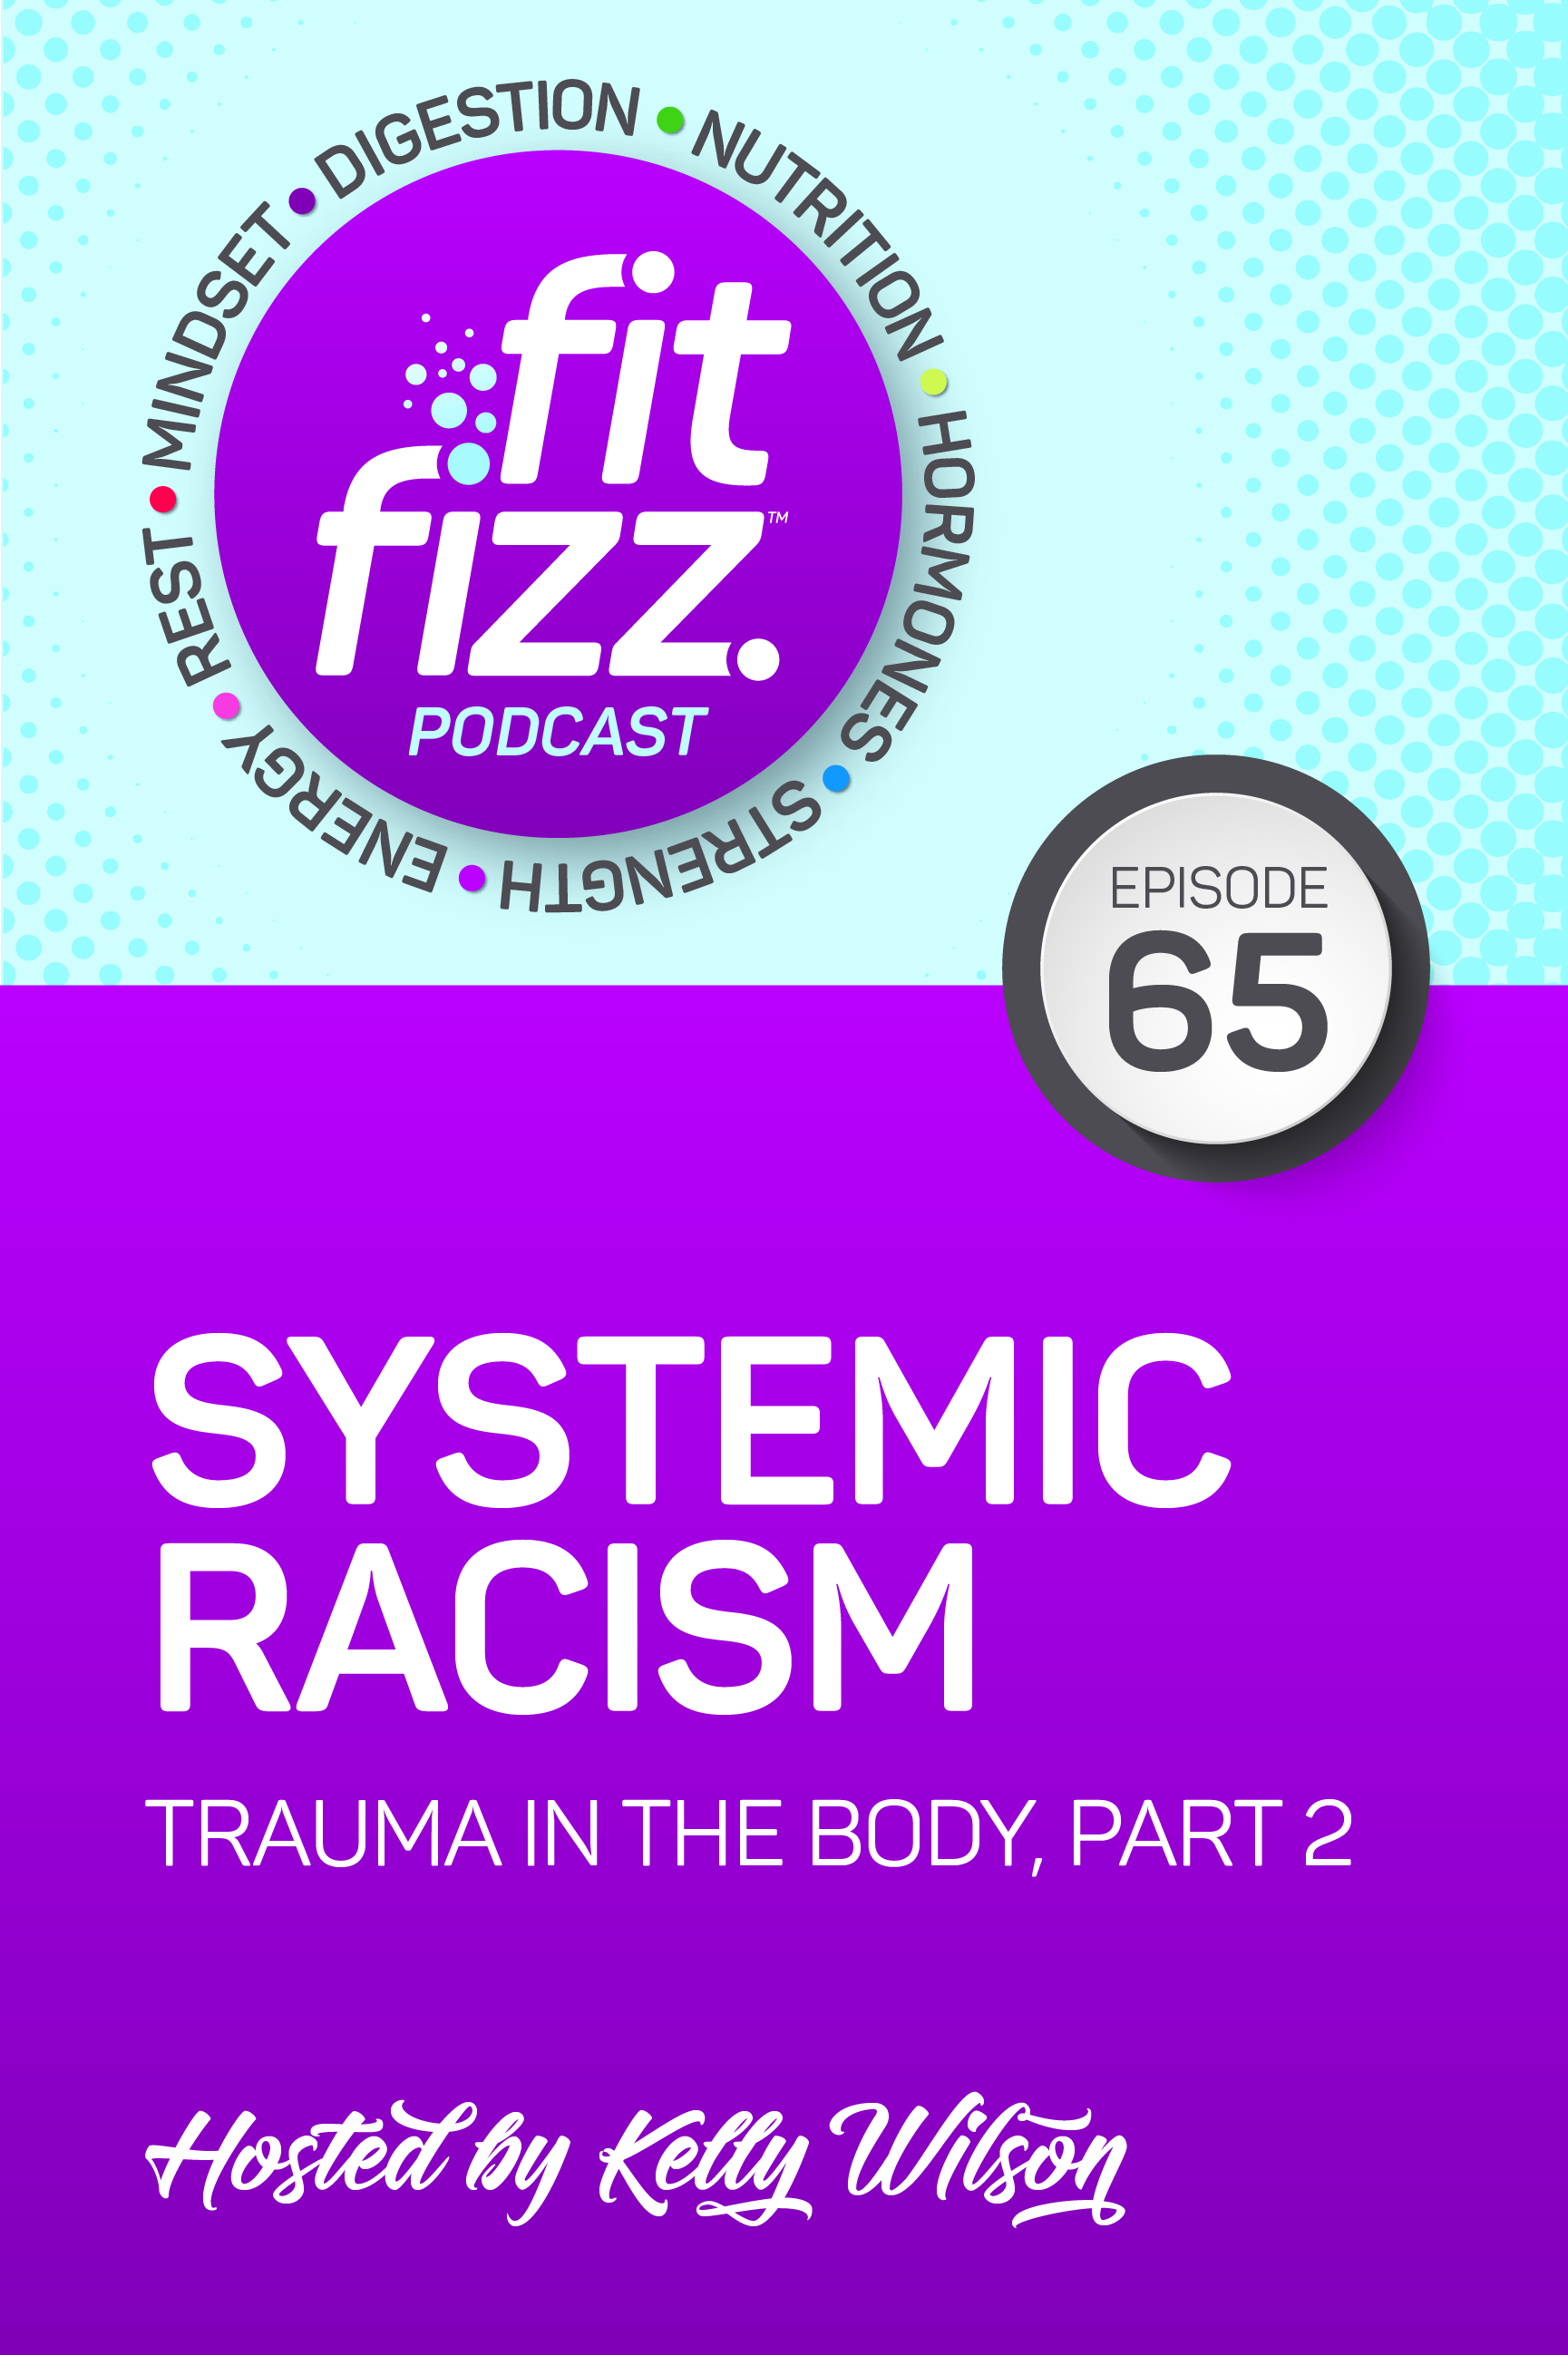 Ep. 65: Systemic Racism (Trauma in the Body, Part 2)